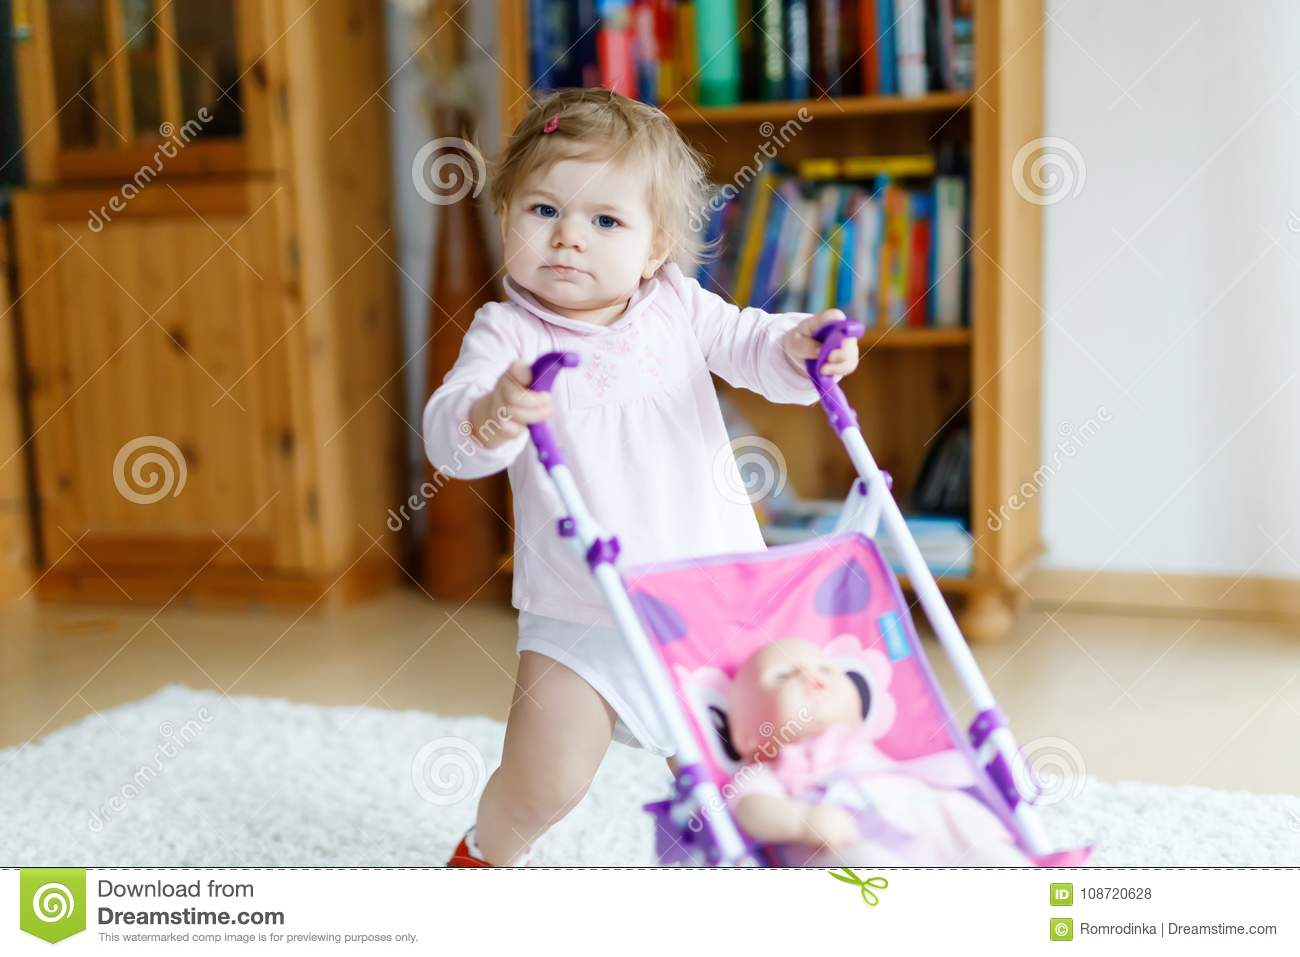 Baby Pushing Pram Youtube Cute Adorable Baby Girl Making First Steps With Doll